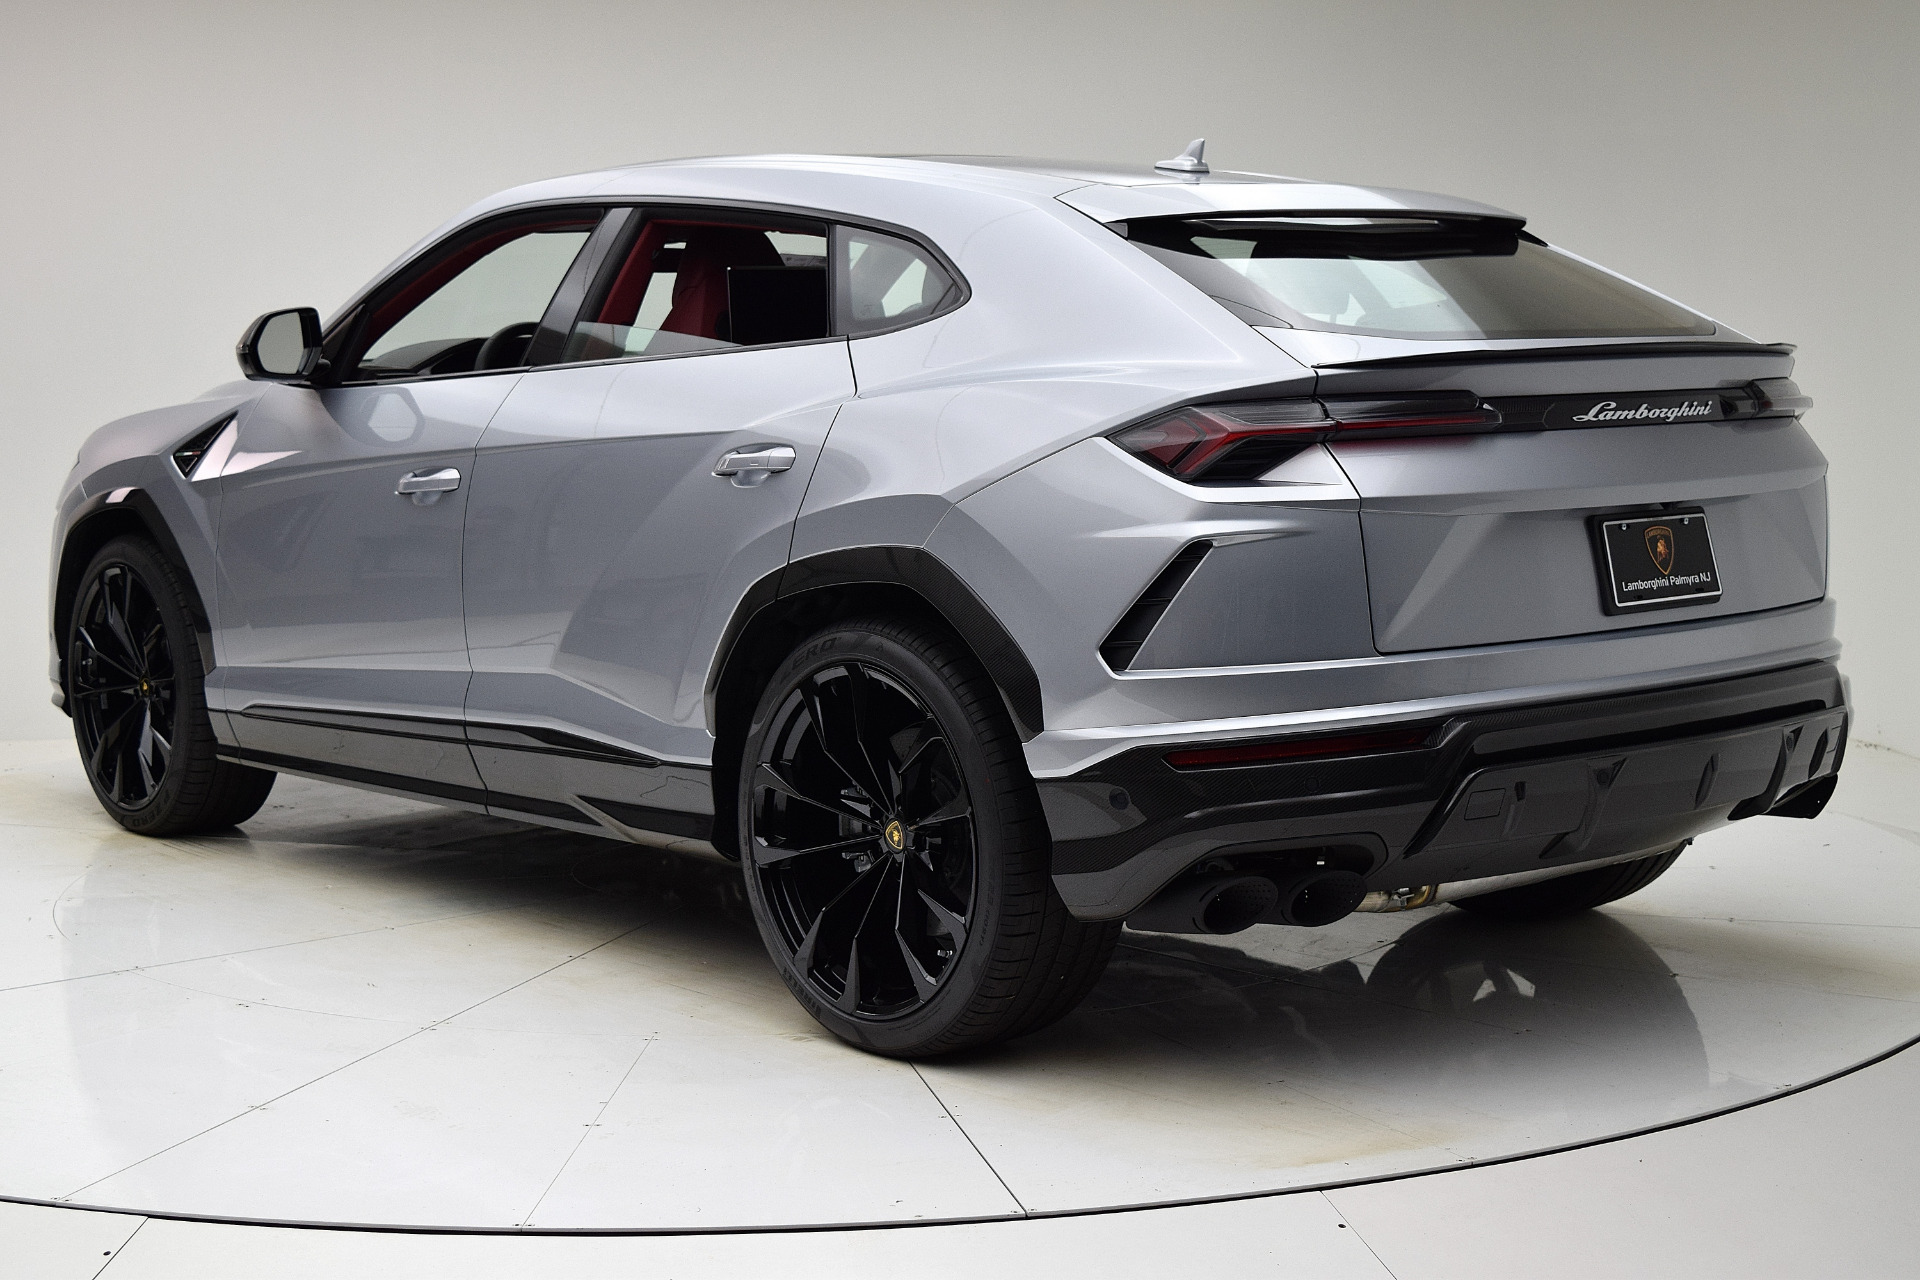 View 2020 Lamborghini Urus For Sale